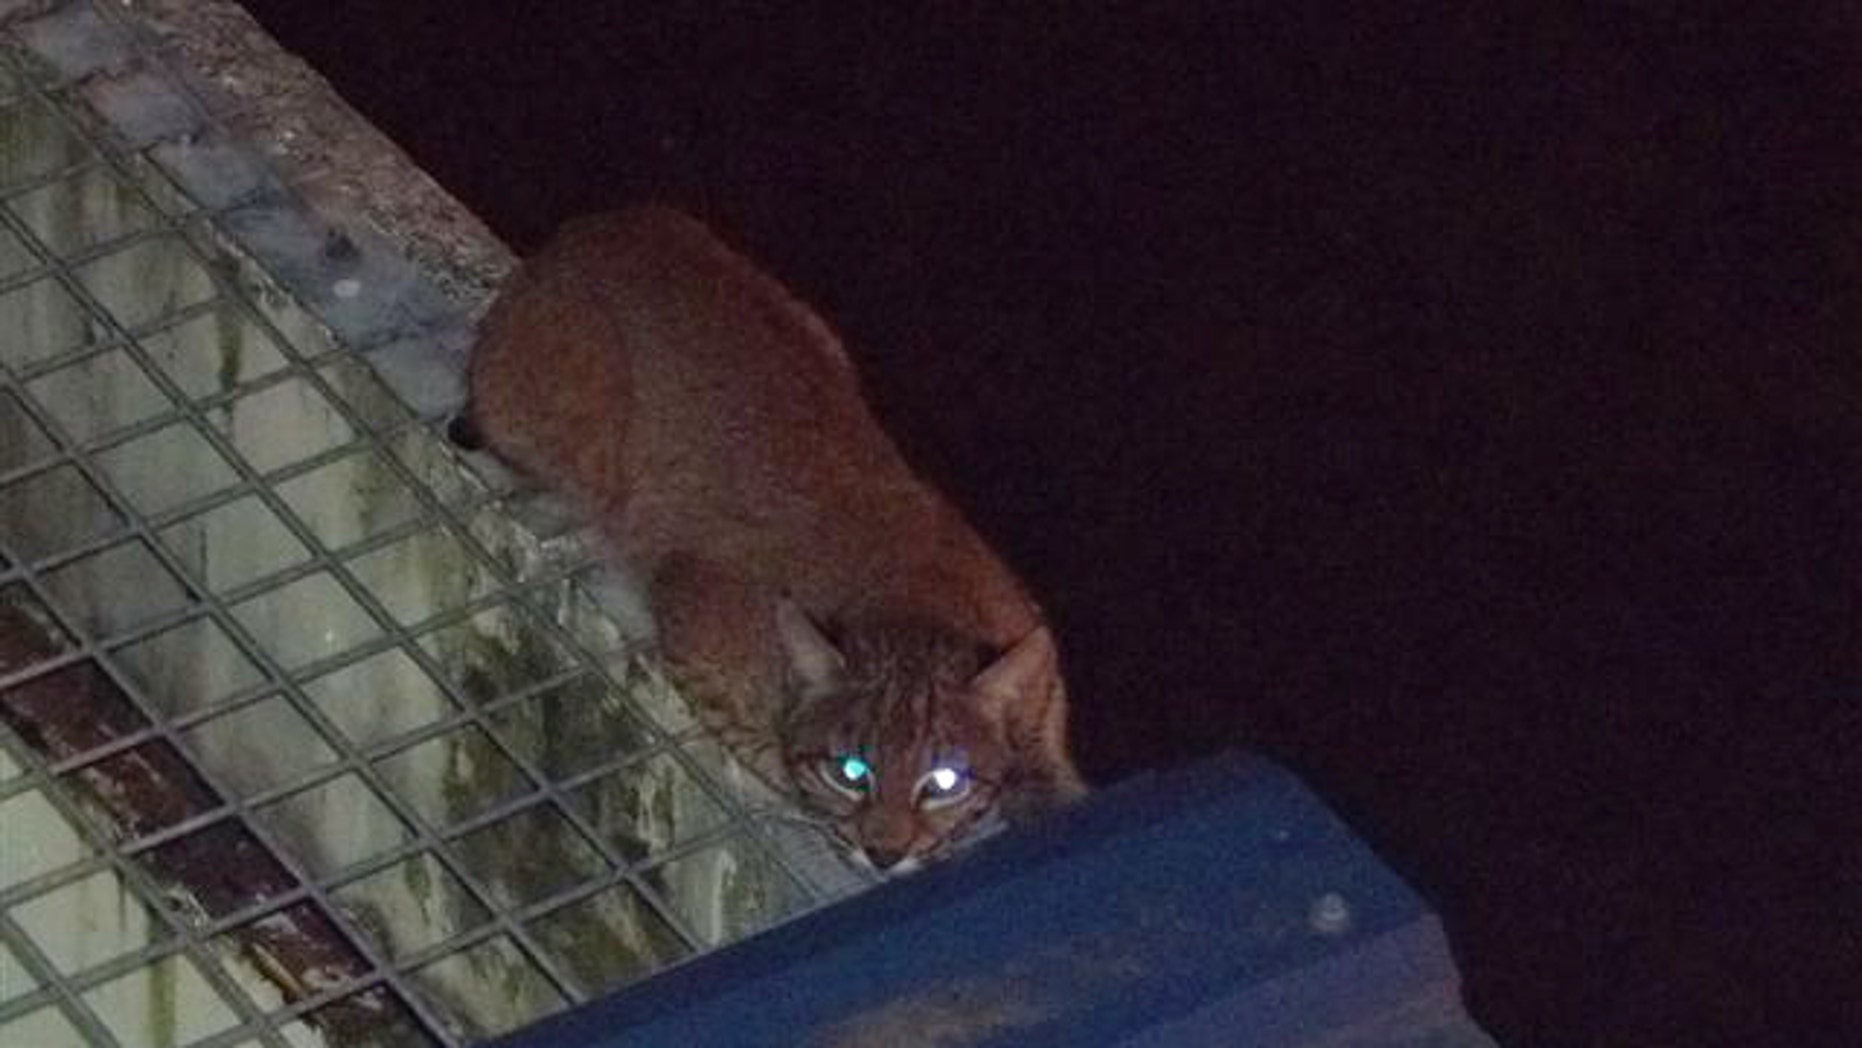 July 17- Photo provided by Washington State Department of Corrections shows a bobcat outside on the roof of Monroe Correctional Complex in Monroe, Wash.